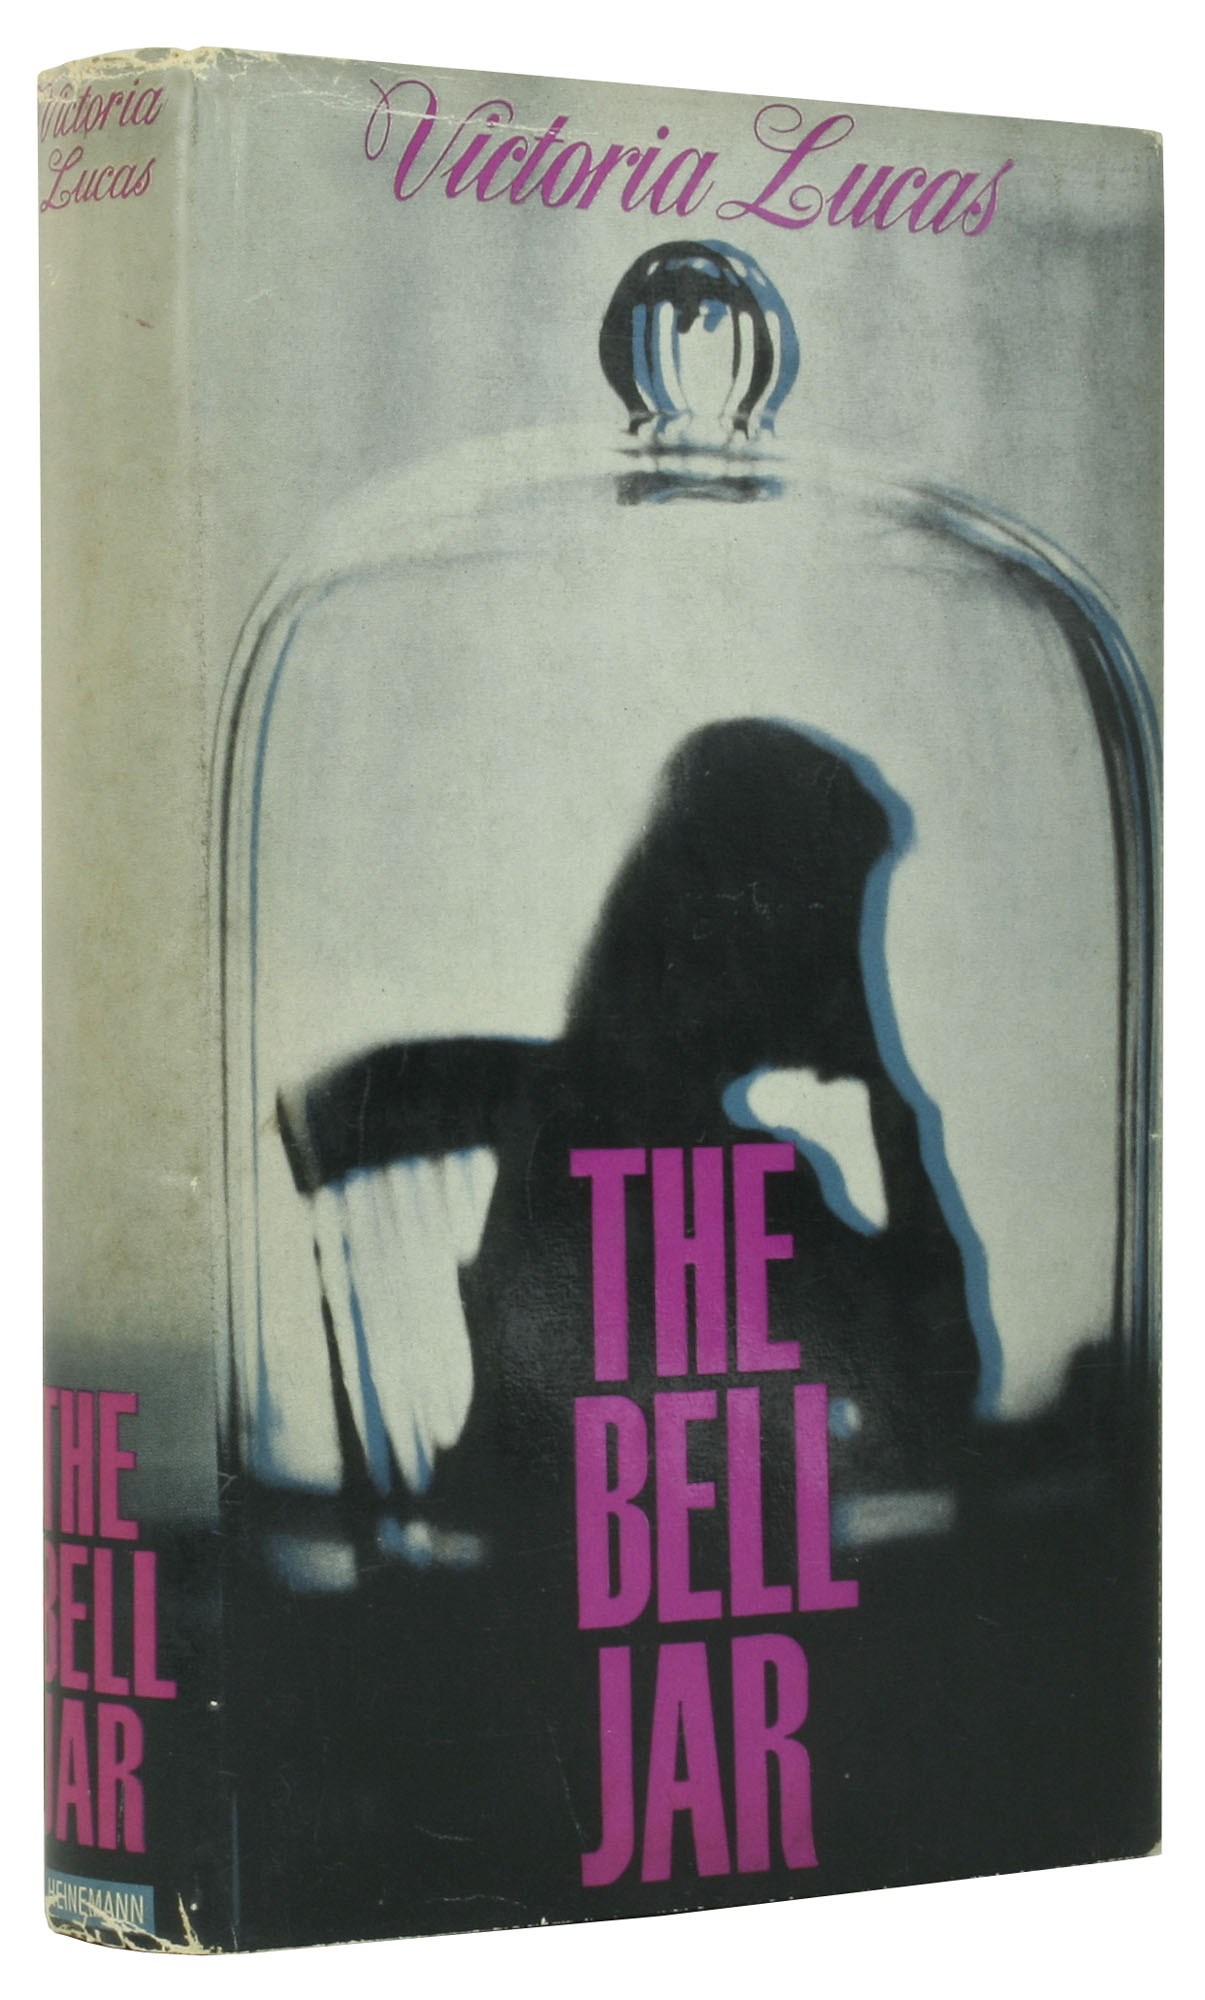 Black Book Price >> The Bell Jar by [PLATH, Sylvia] LUCAS, Victoria - Jonkers Rare Books